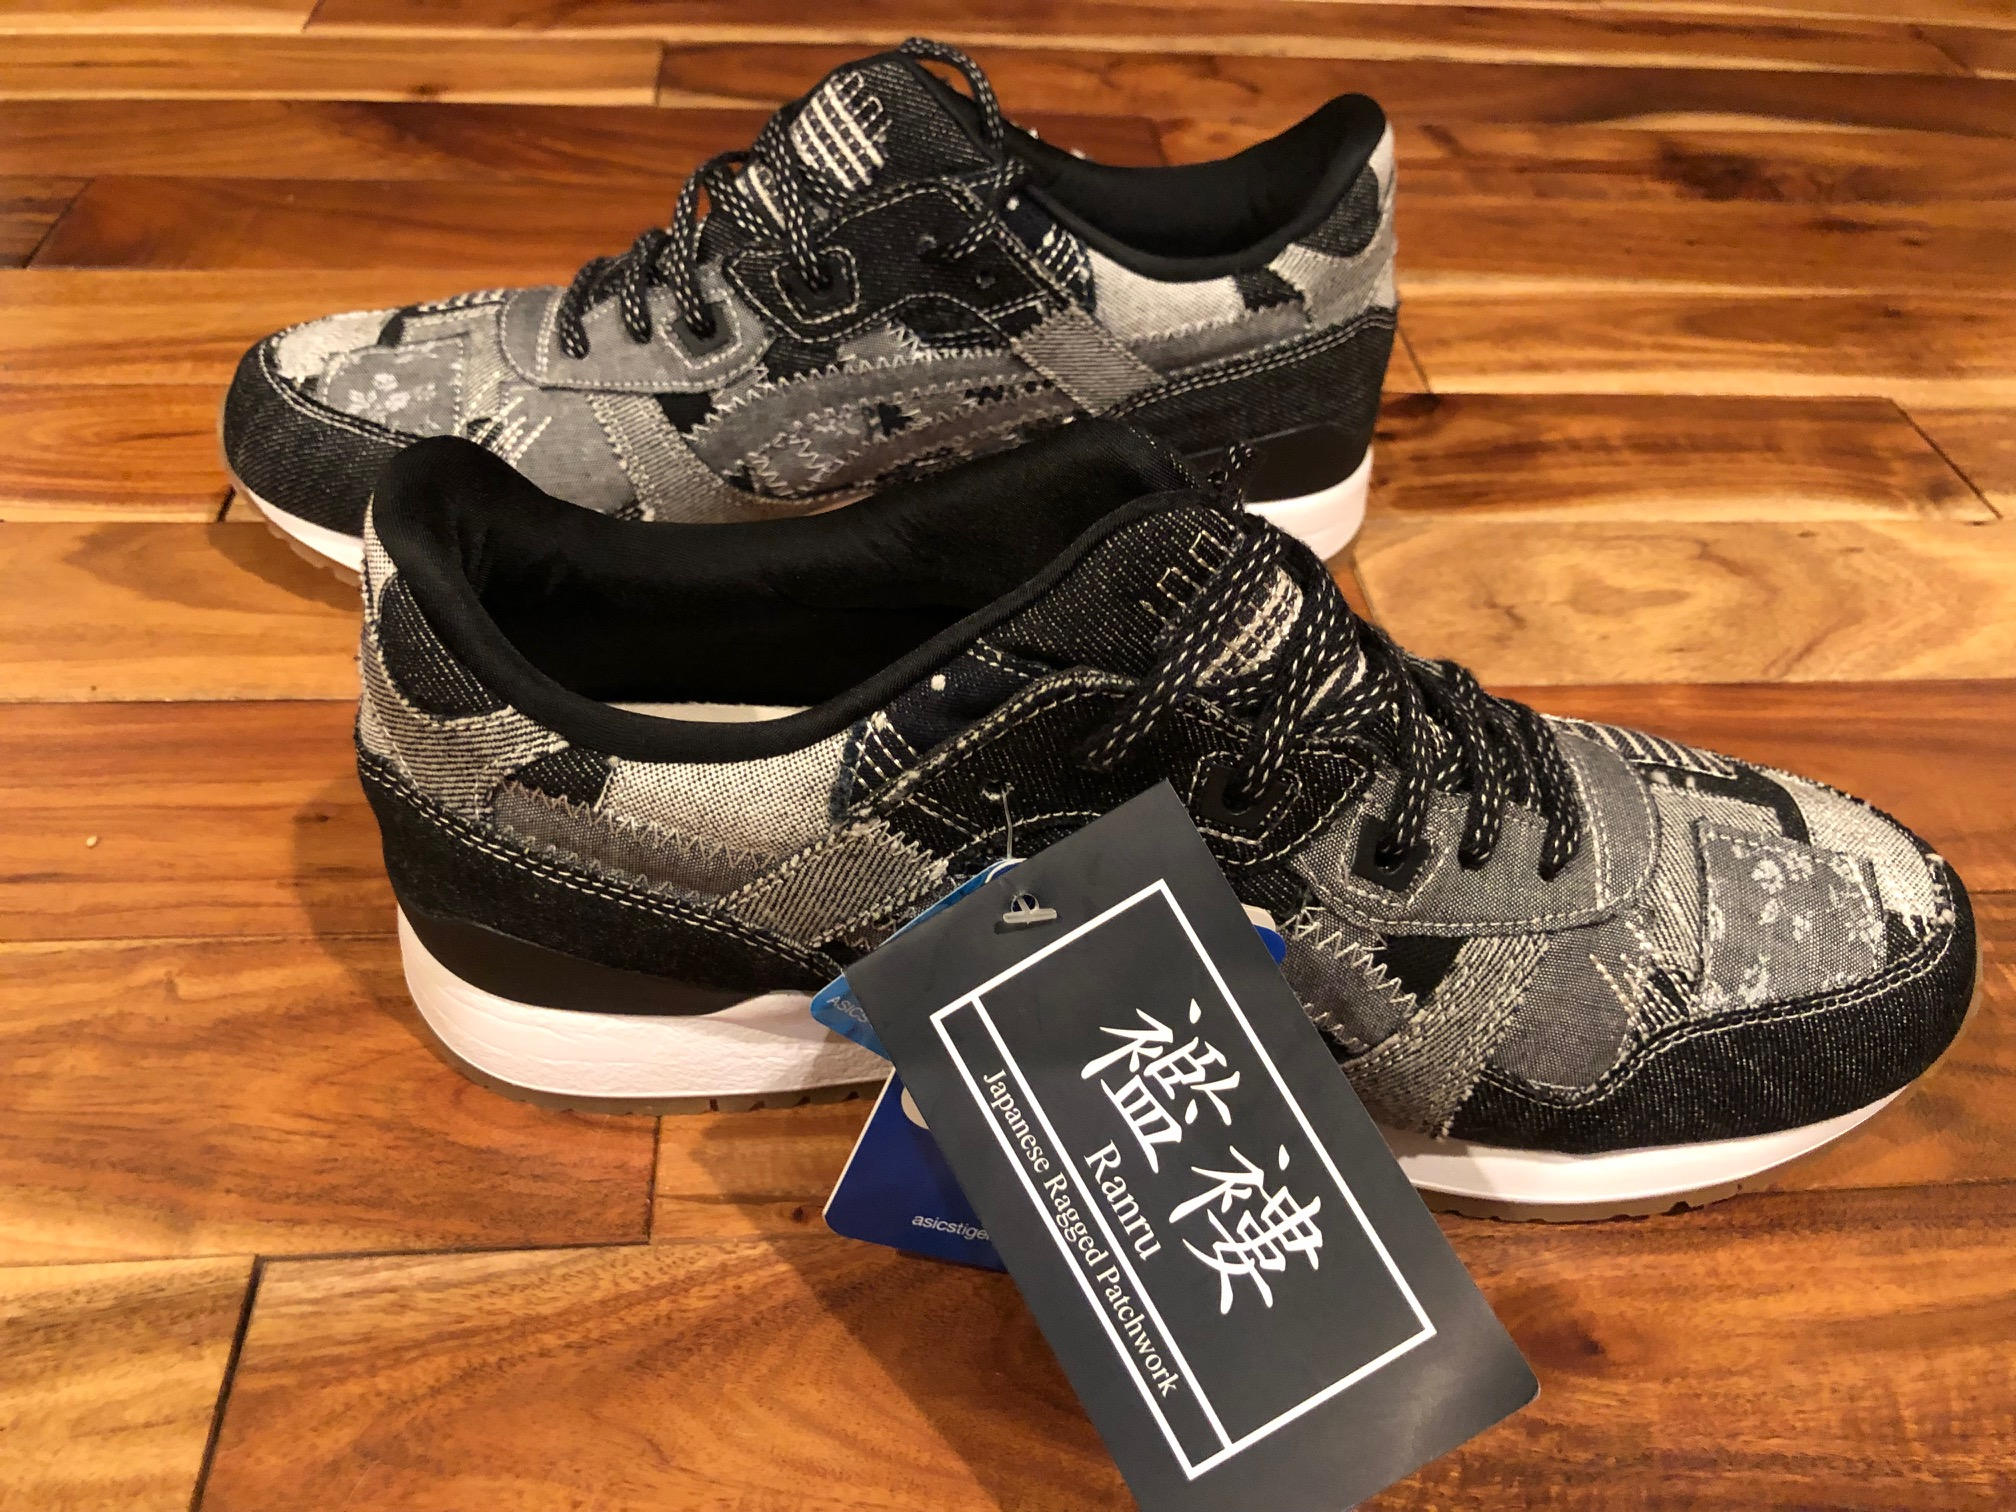 Asics Gel Lyte III Ranru Pack Japanese Patchwork Black